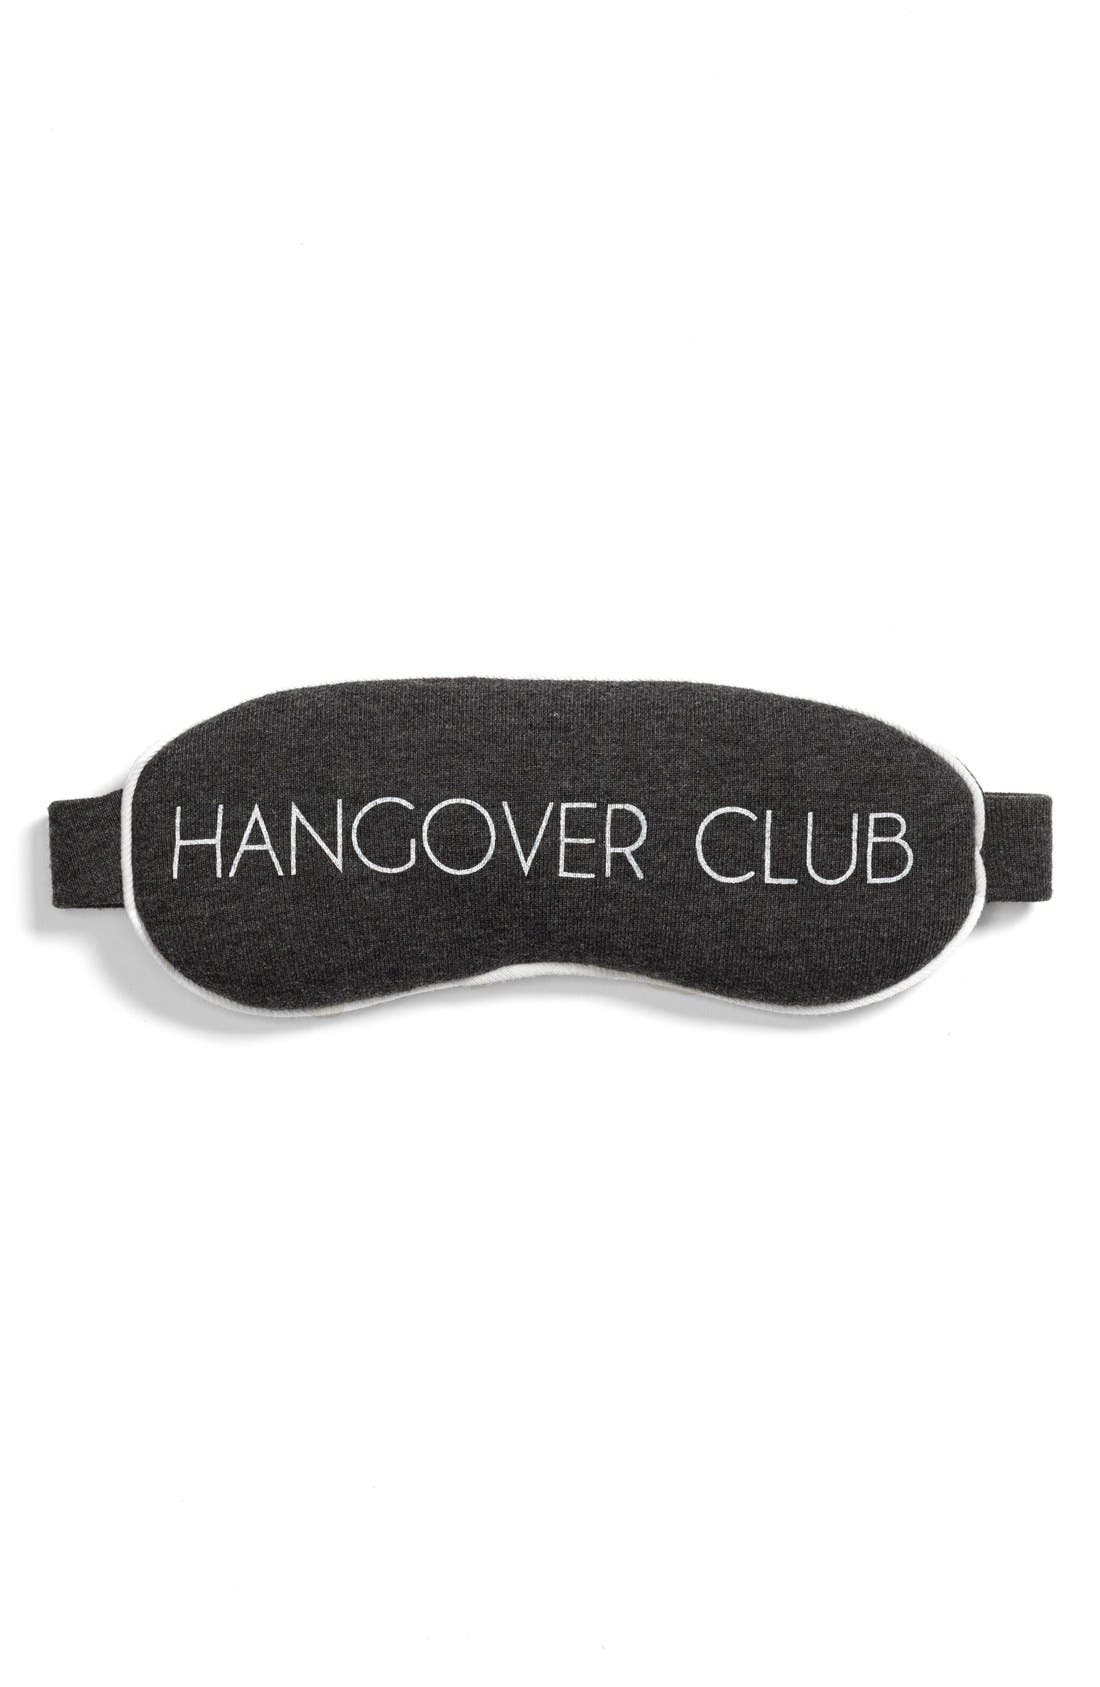 Main Image - Wildfox 'Hangover Club' Sleep Mask